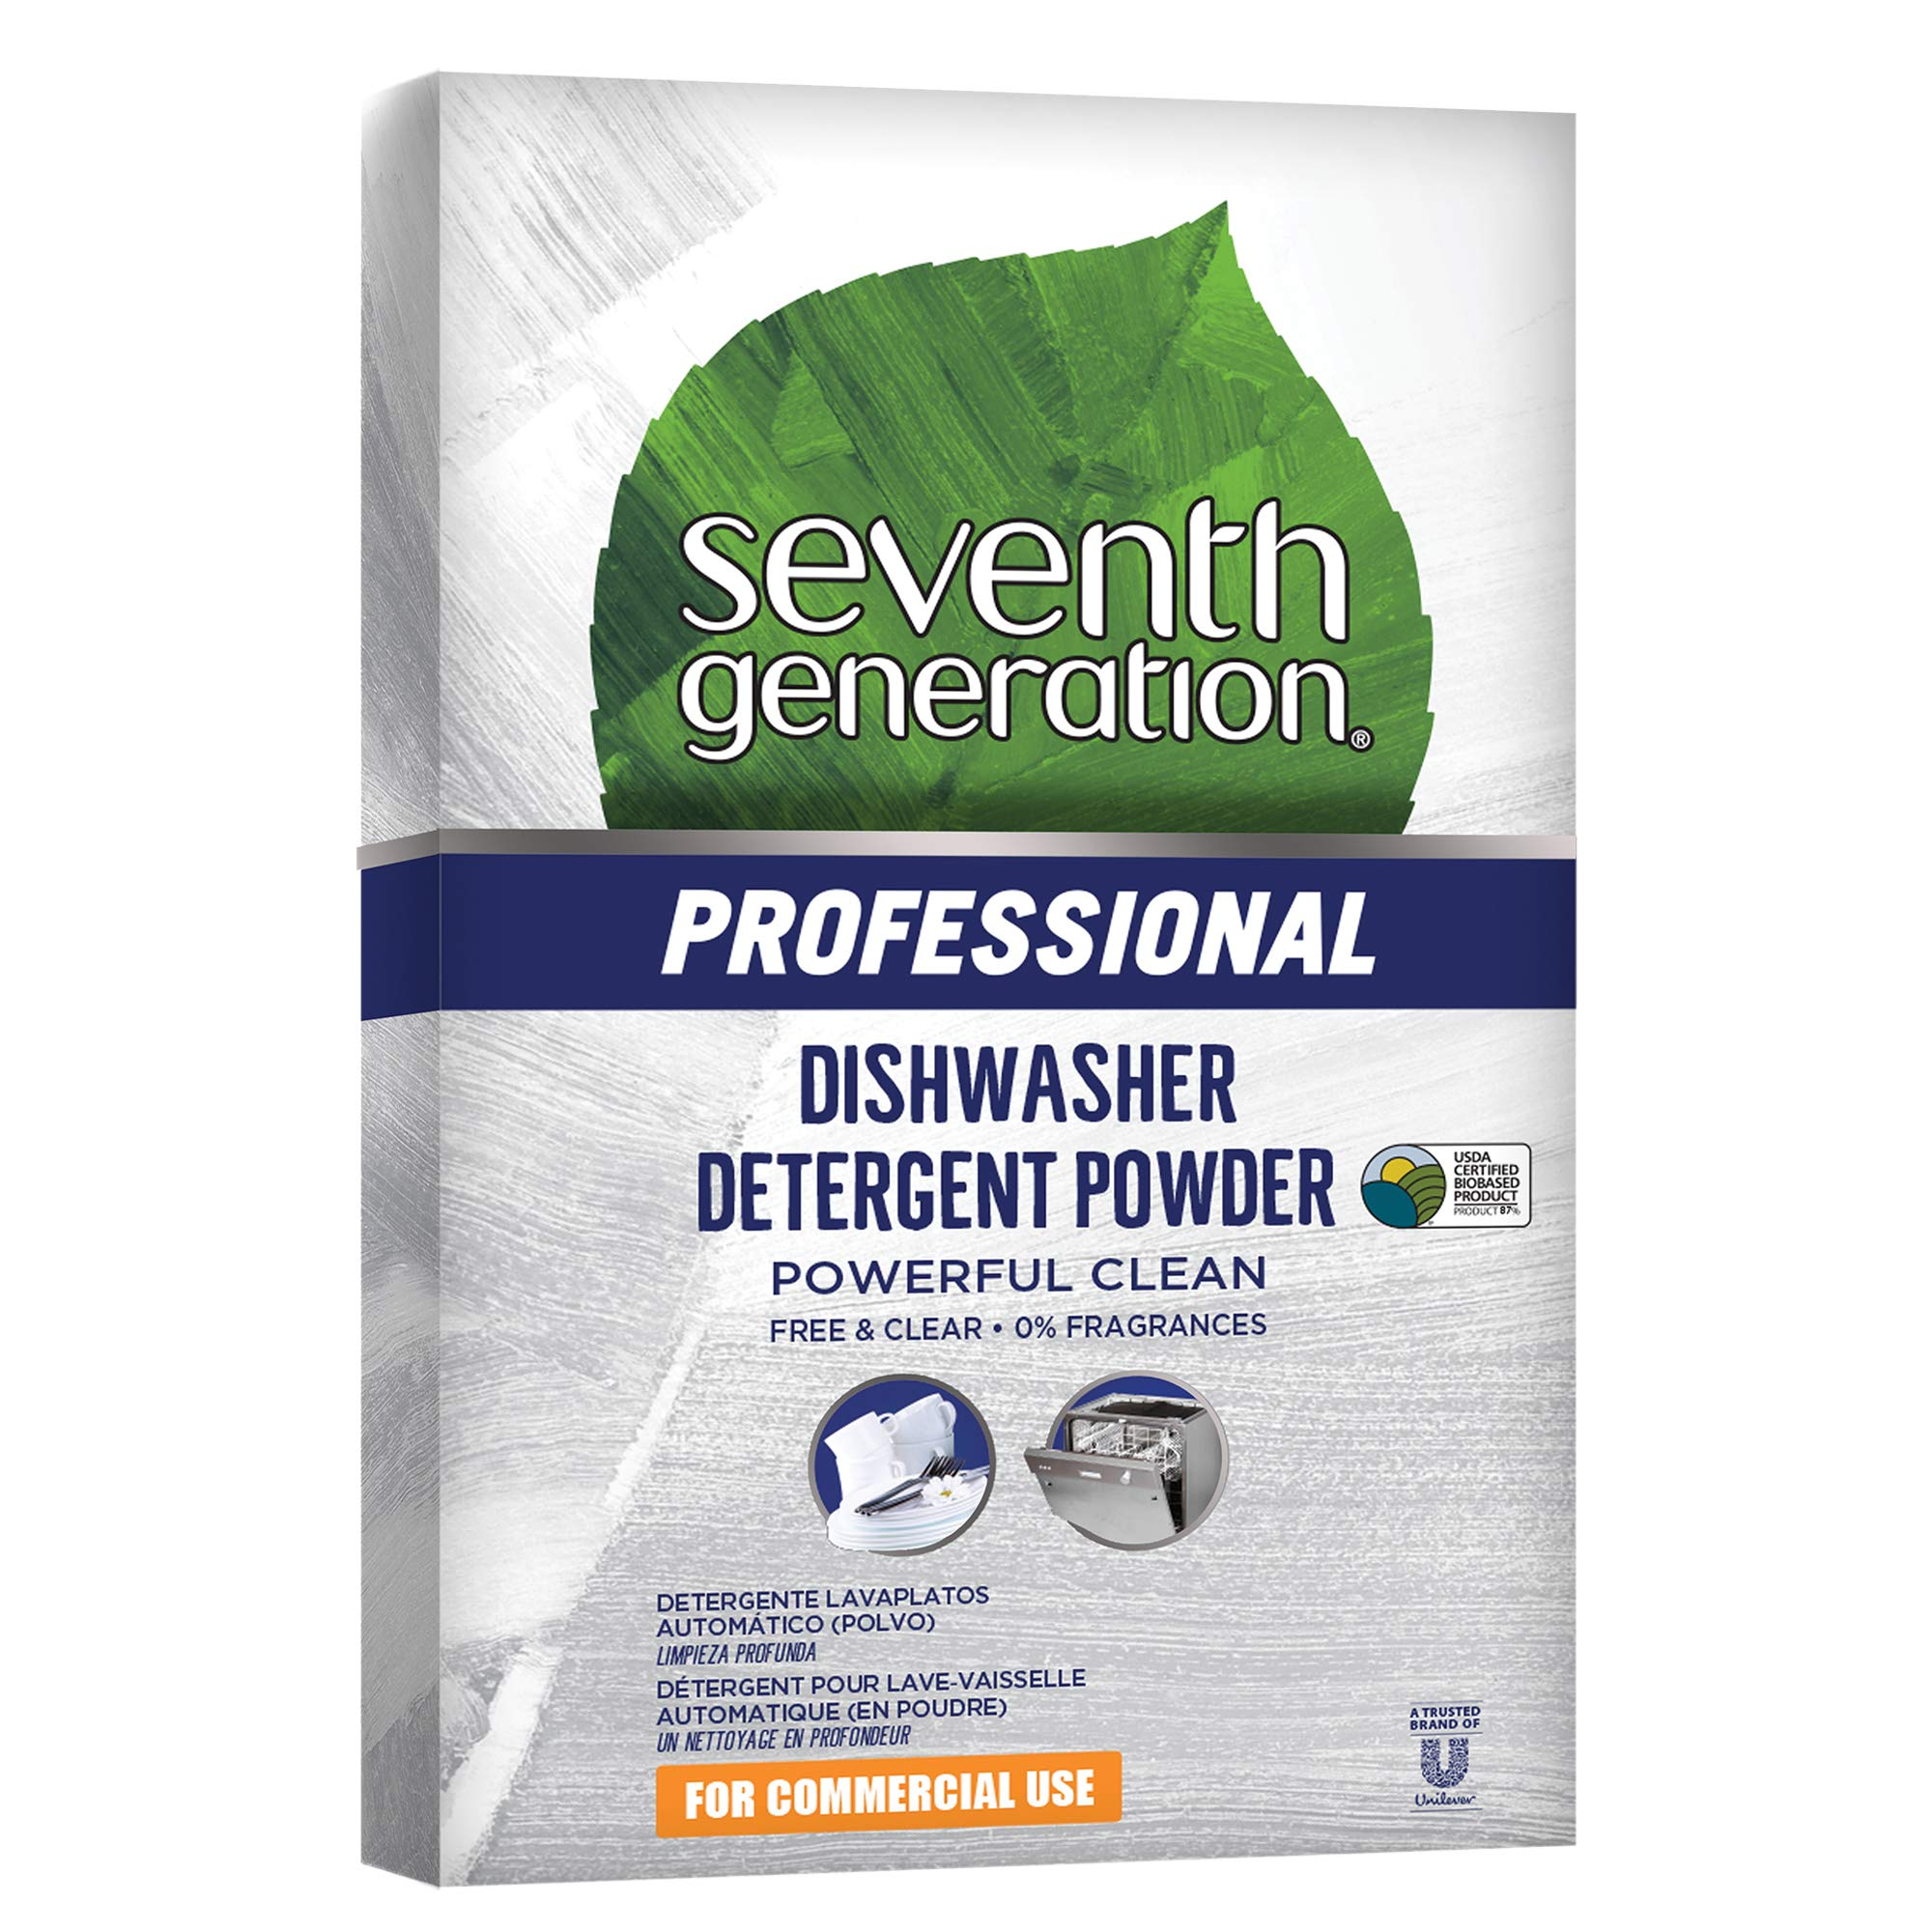 Seventh Generation Professional Dishwasher Detergent Powder, Unscented, 75 Ounce (Pack of 8)